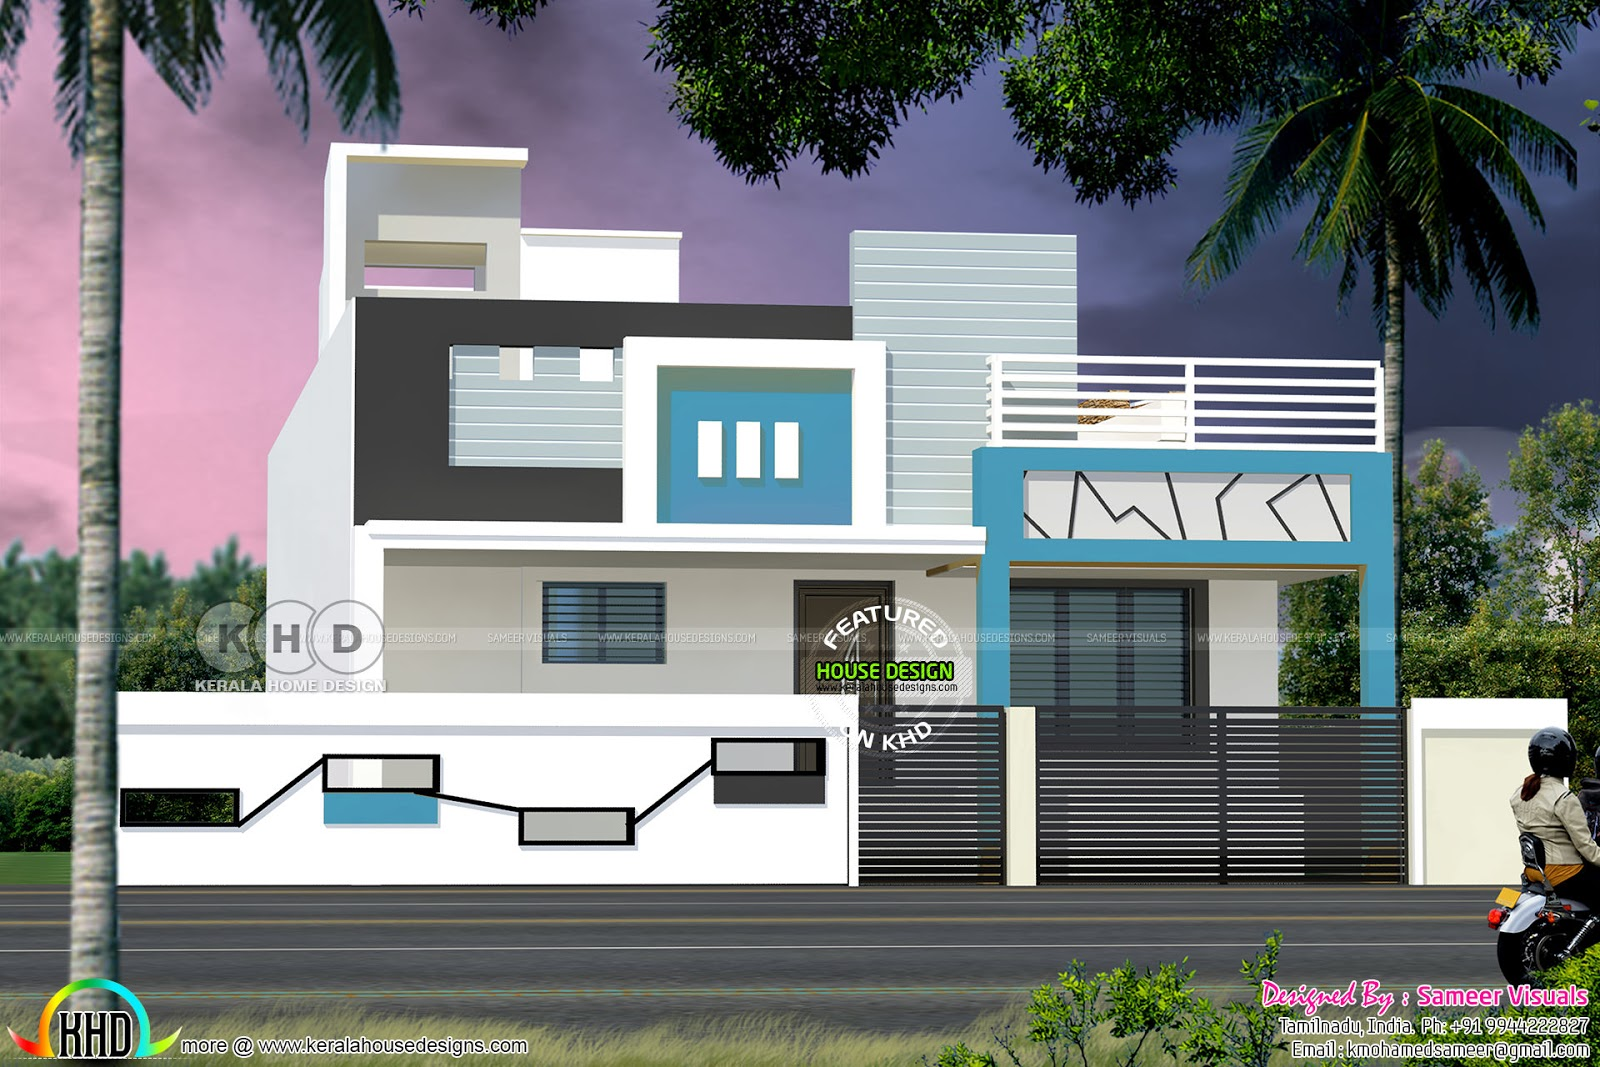 Home Design Of India 75 Indian Home Design Single Floor Zachary Kristen